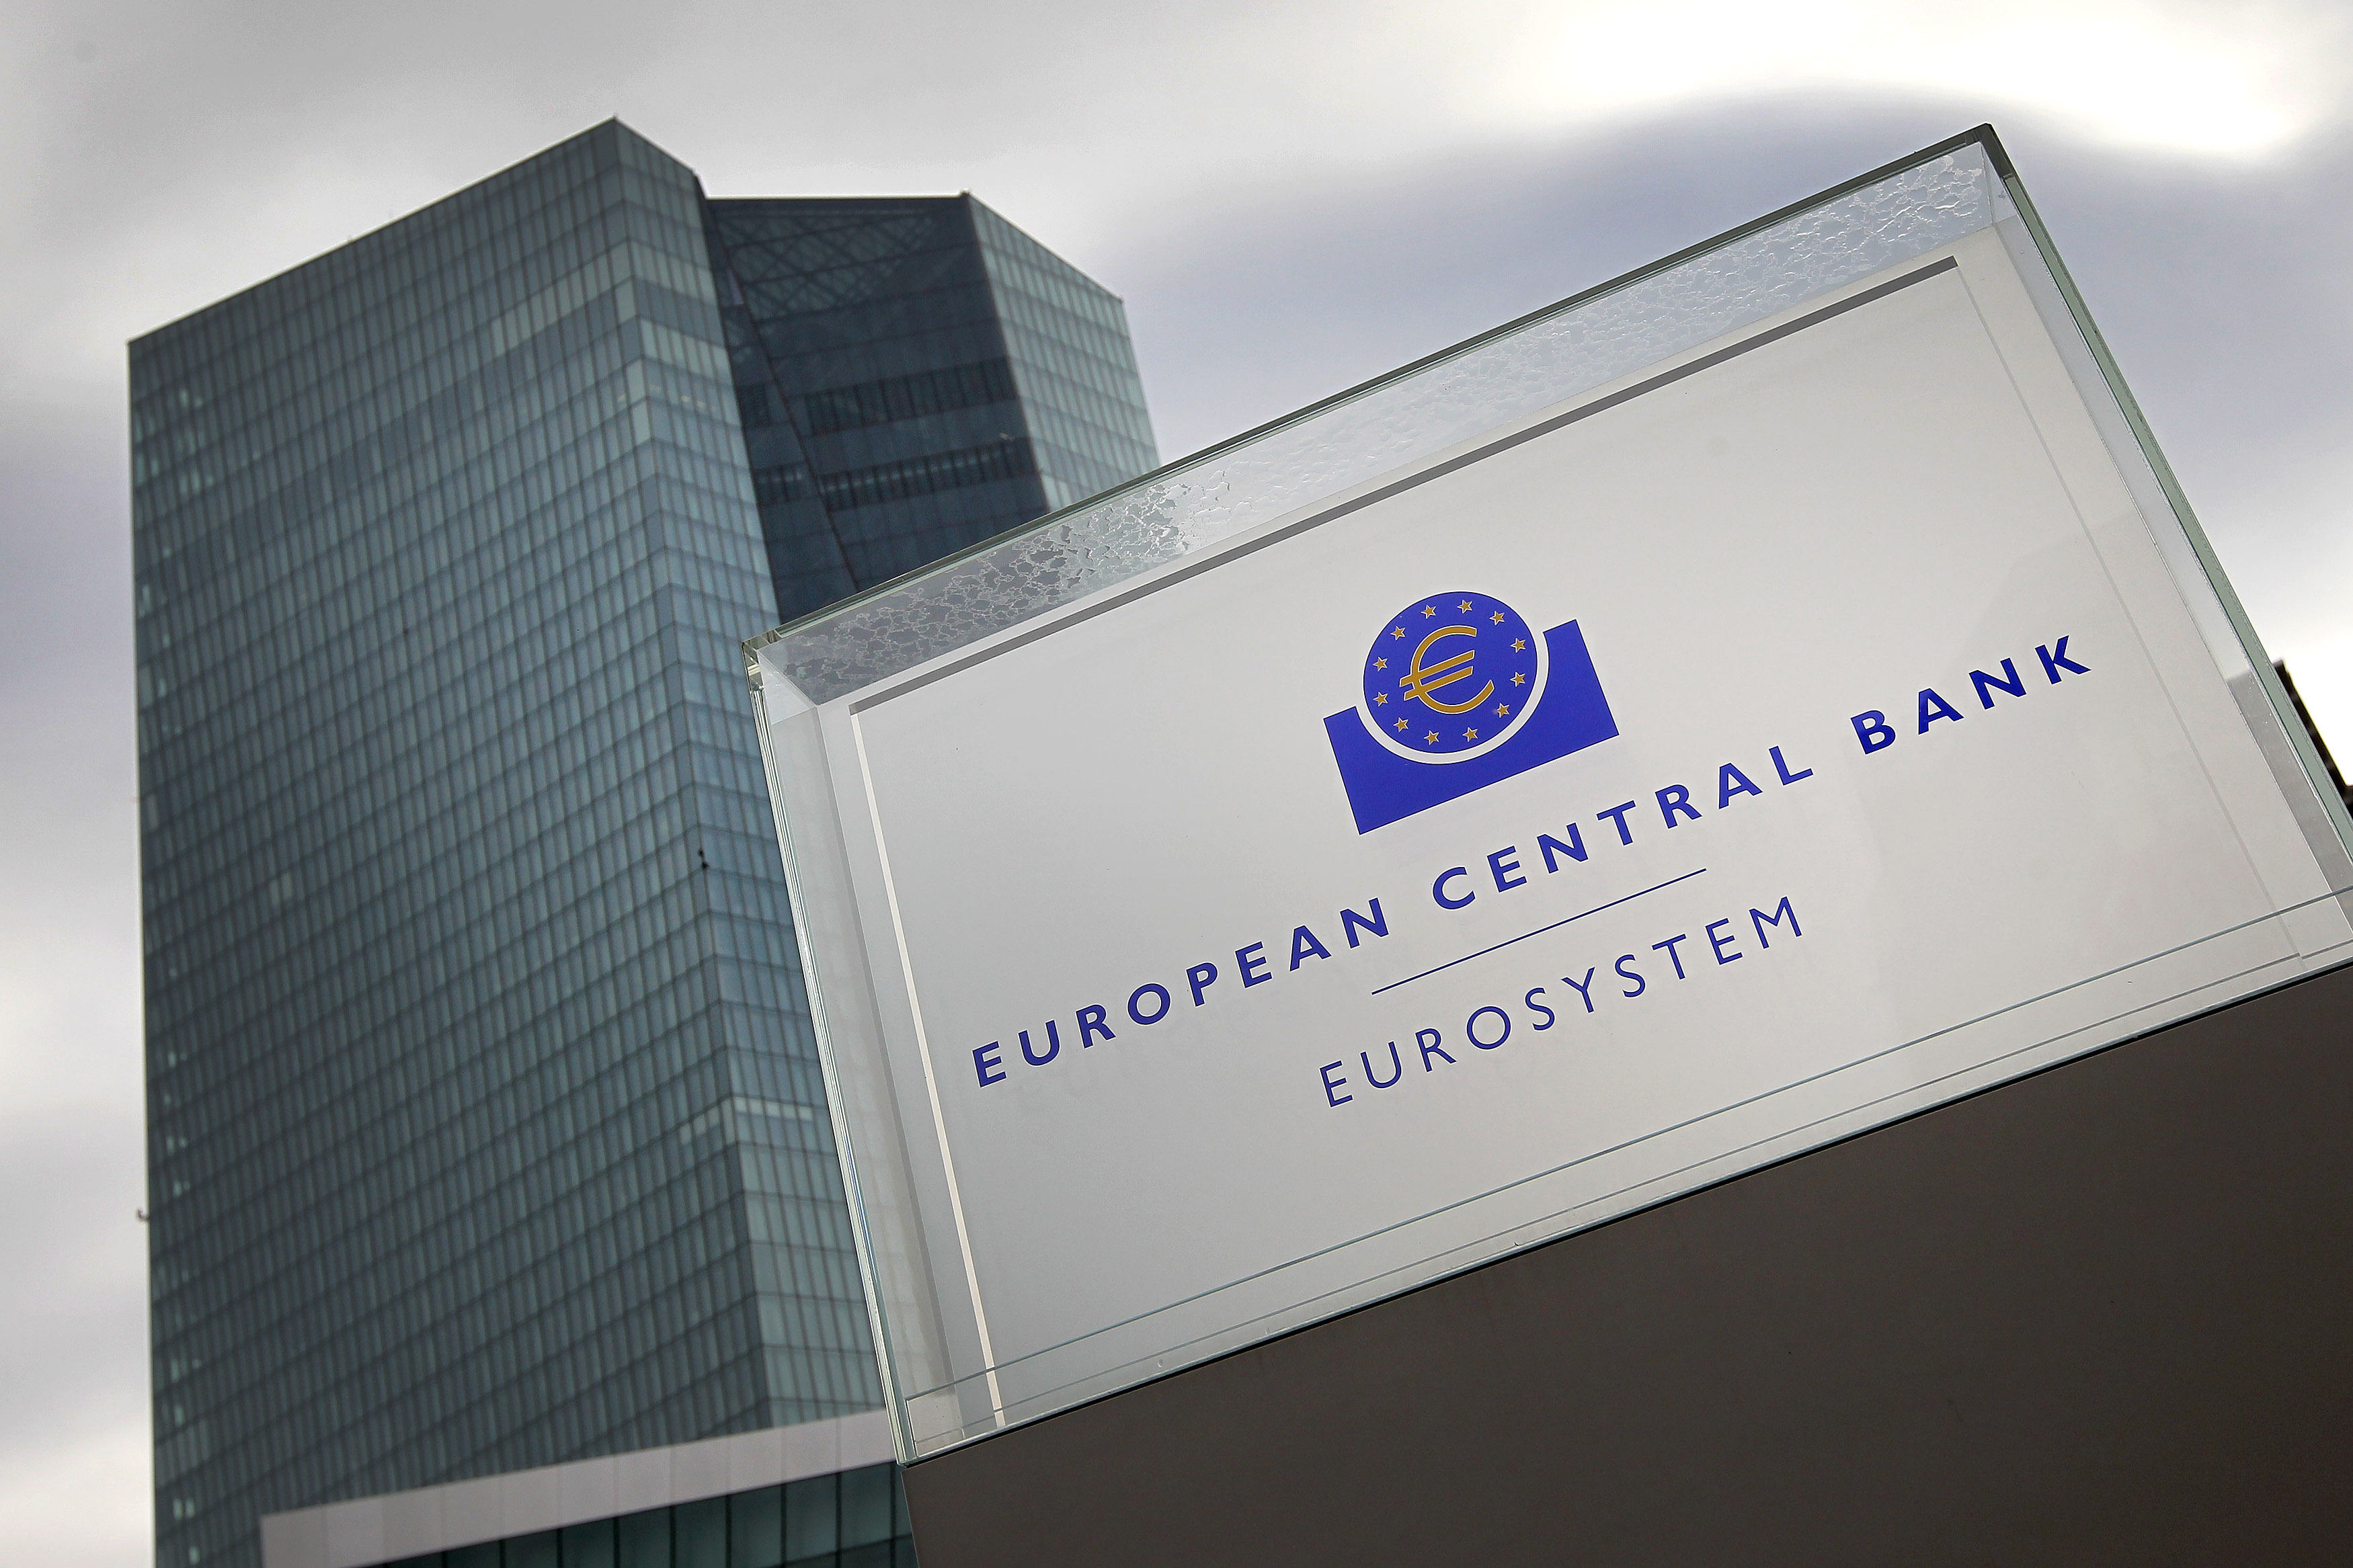 """A picture taken on October 26, 2017 shows the building of the European Central Bank (ECB) in Frankfurt am Main, western Germany. European Central Bank chief Mario Draghi said the eurozone economy still relied on """"an ample degree"""" of stimulus in the face of sluggish inflation. / AFP PHOTO / Daniel ROLAND        (Photo credit should read DANIEL ROLAND/AFP/Getty Images)"""